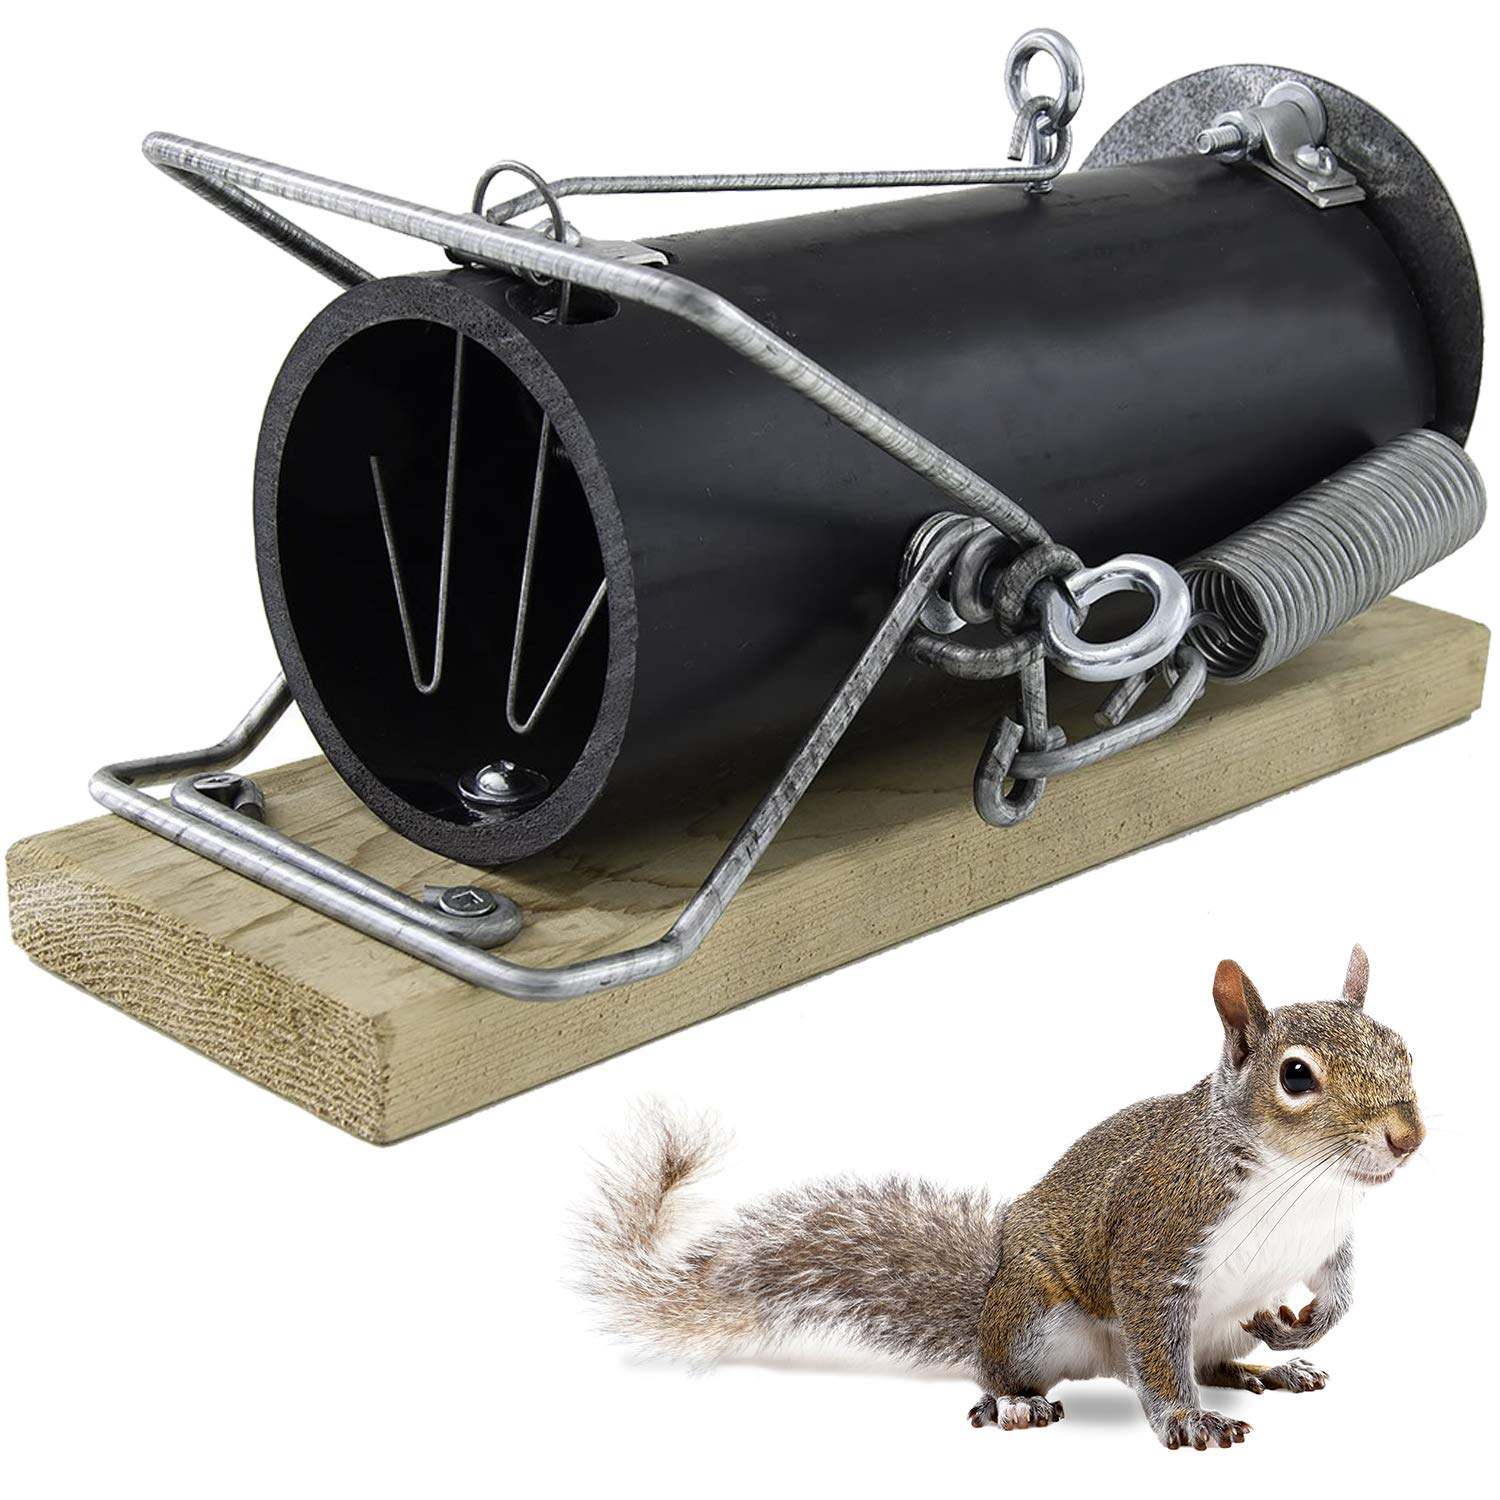 OUELL 3-10 | Snap trap, Spring trap, Deadly trap, Killing trap, Plastic trap, Metal trap, Human trap | Rodent, Rat, Squirrel, Weasel, Stoat, Muskrats | High efficiency and High performance environment by Ouell Traps